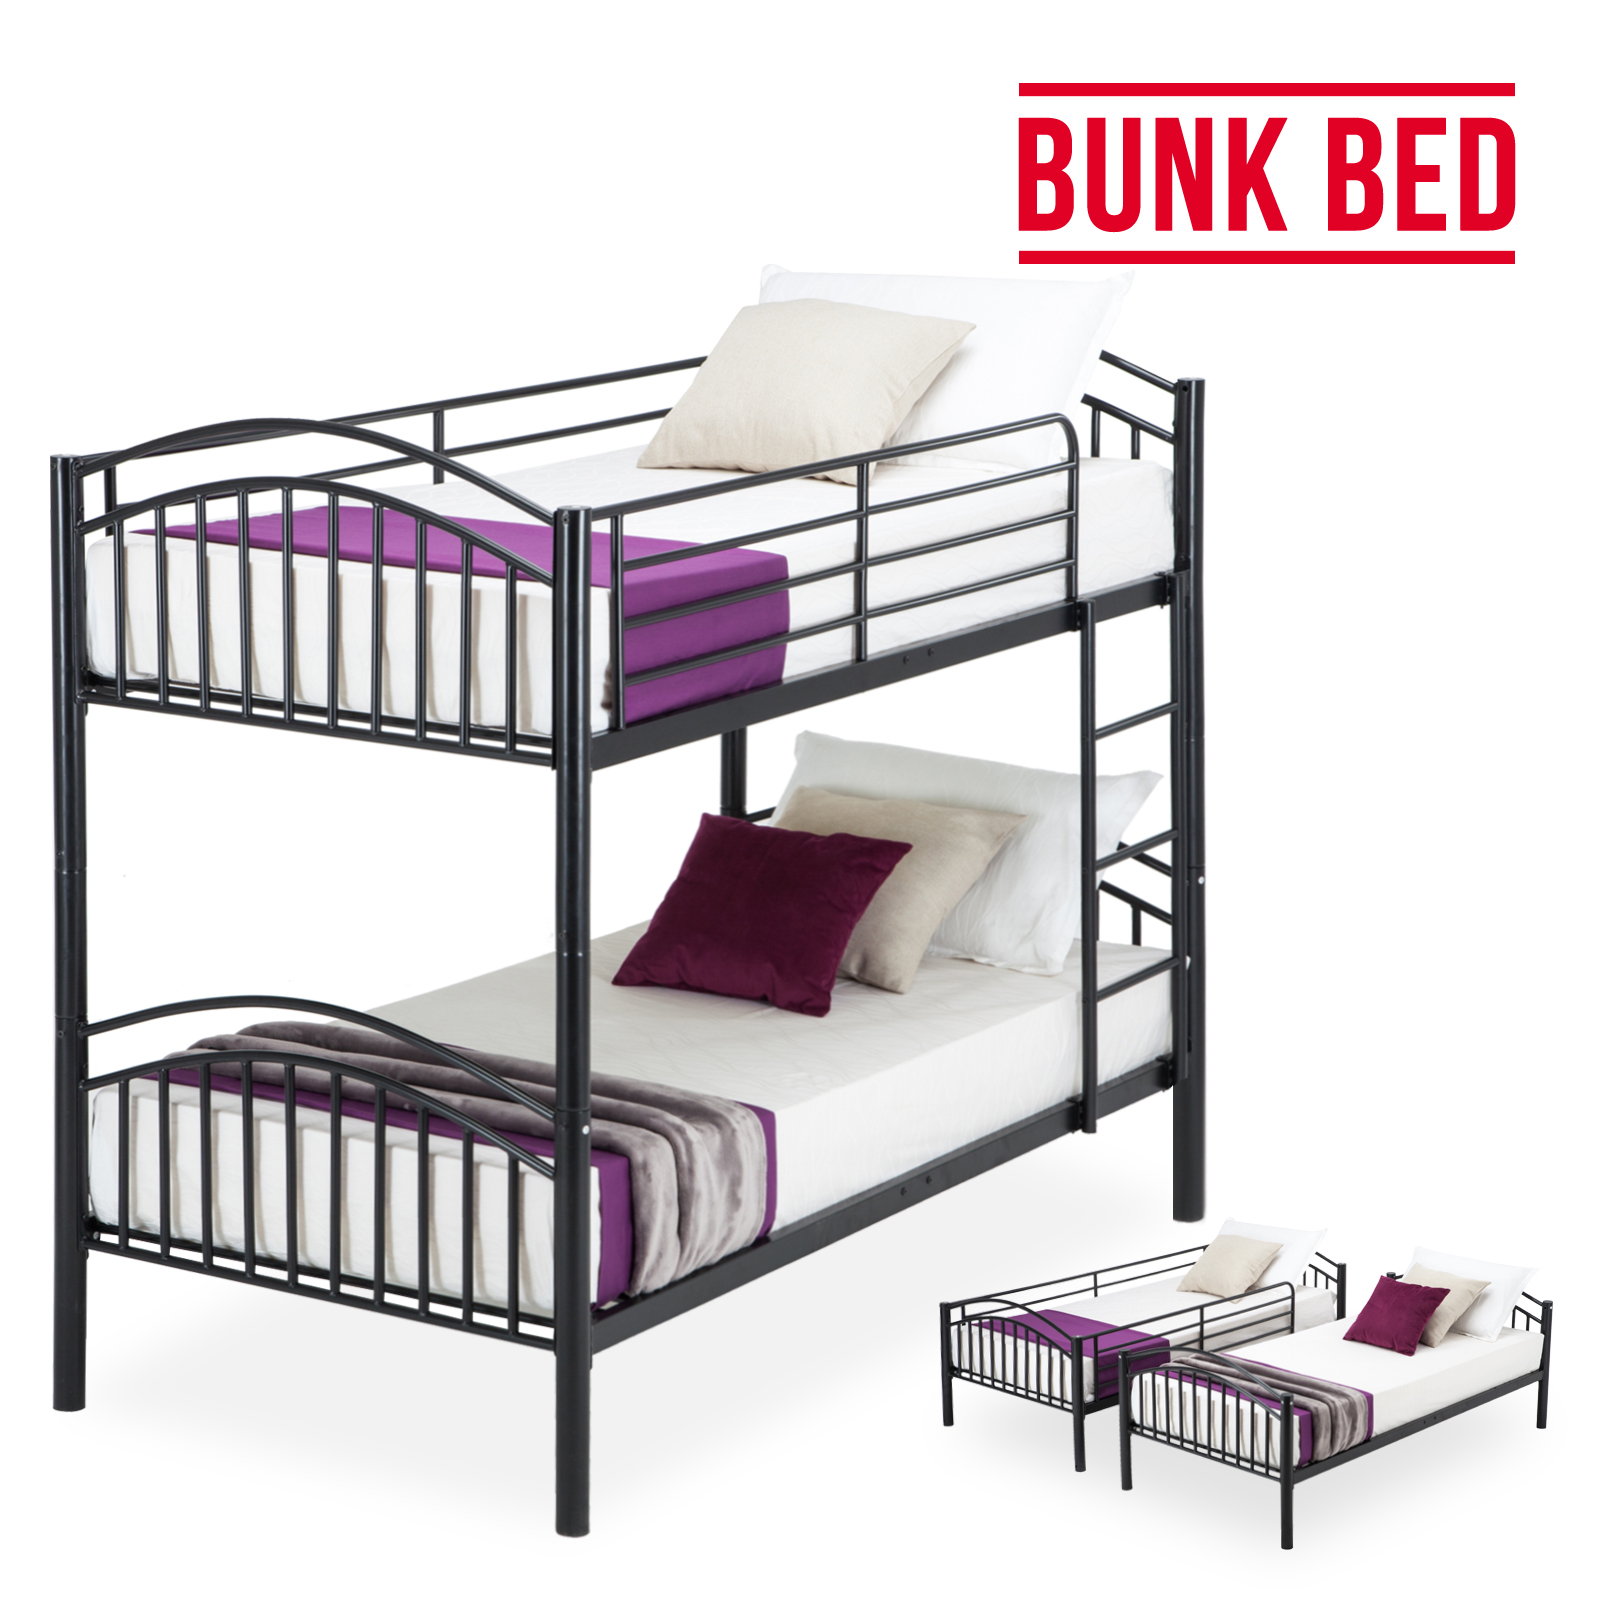 modern 3ft black single metal bunk bed frame 2 person for adult children ebay. Black Bedroom Furniture Sets. Home Design Ideas